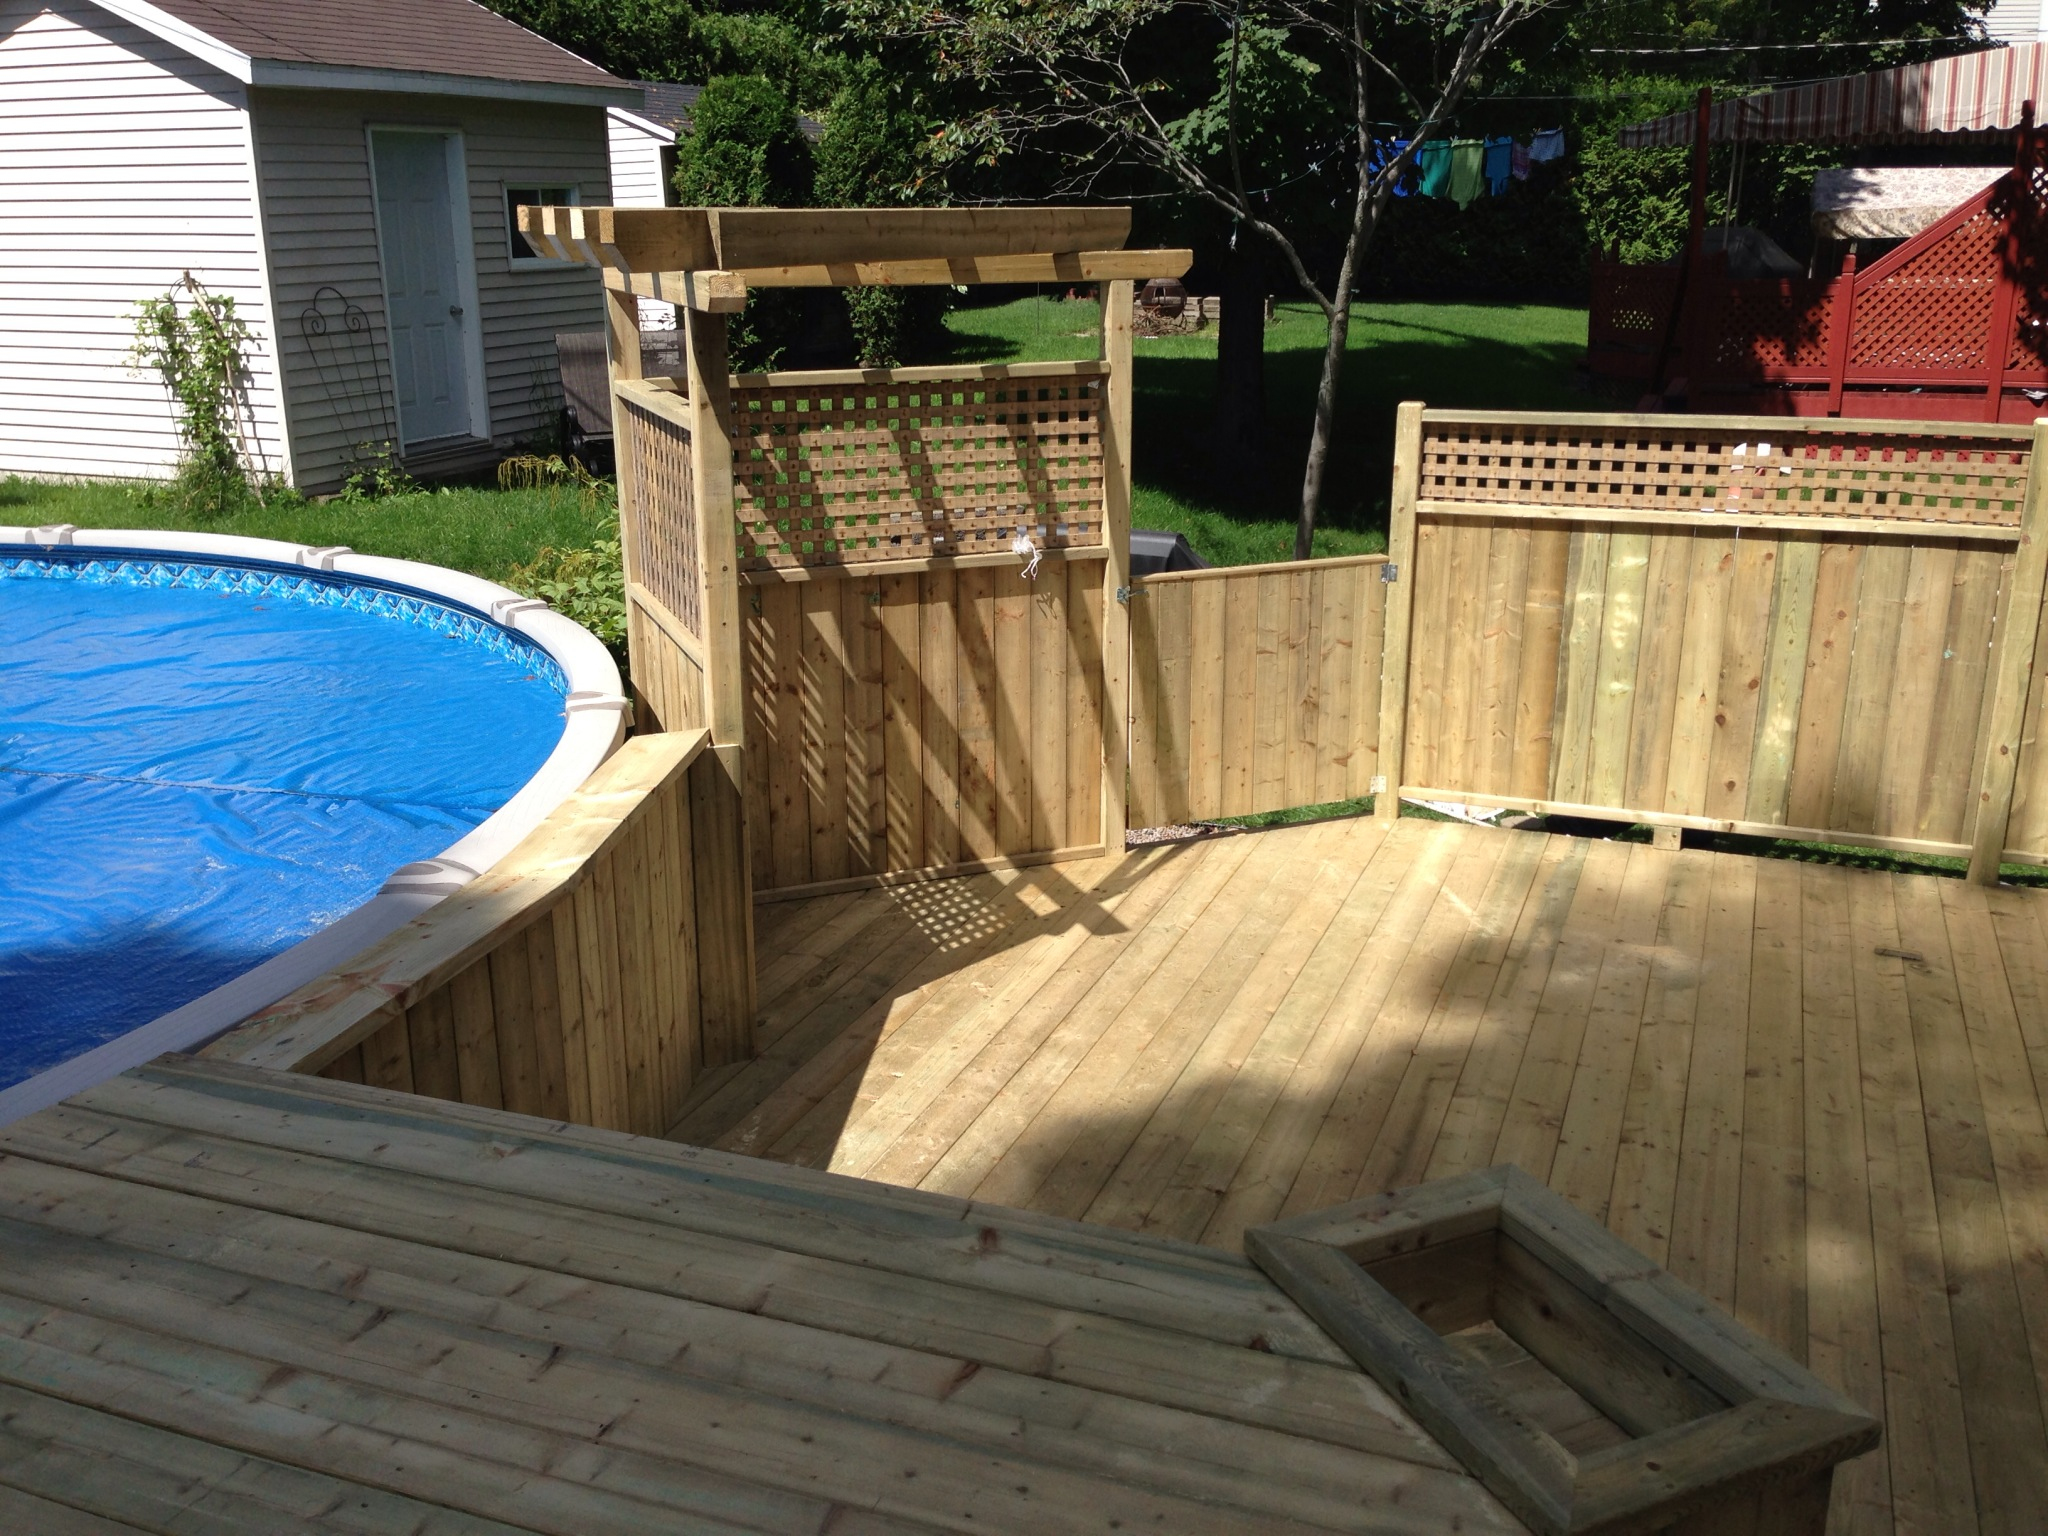 Patios decks piscine patio bois trait for Modele de galerie en bois